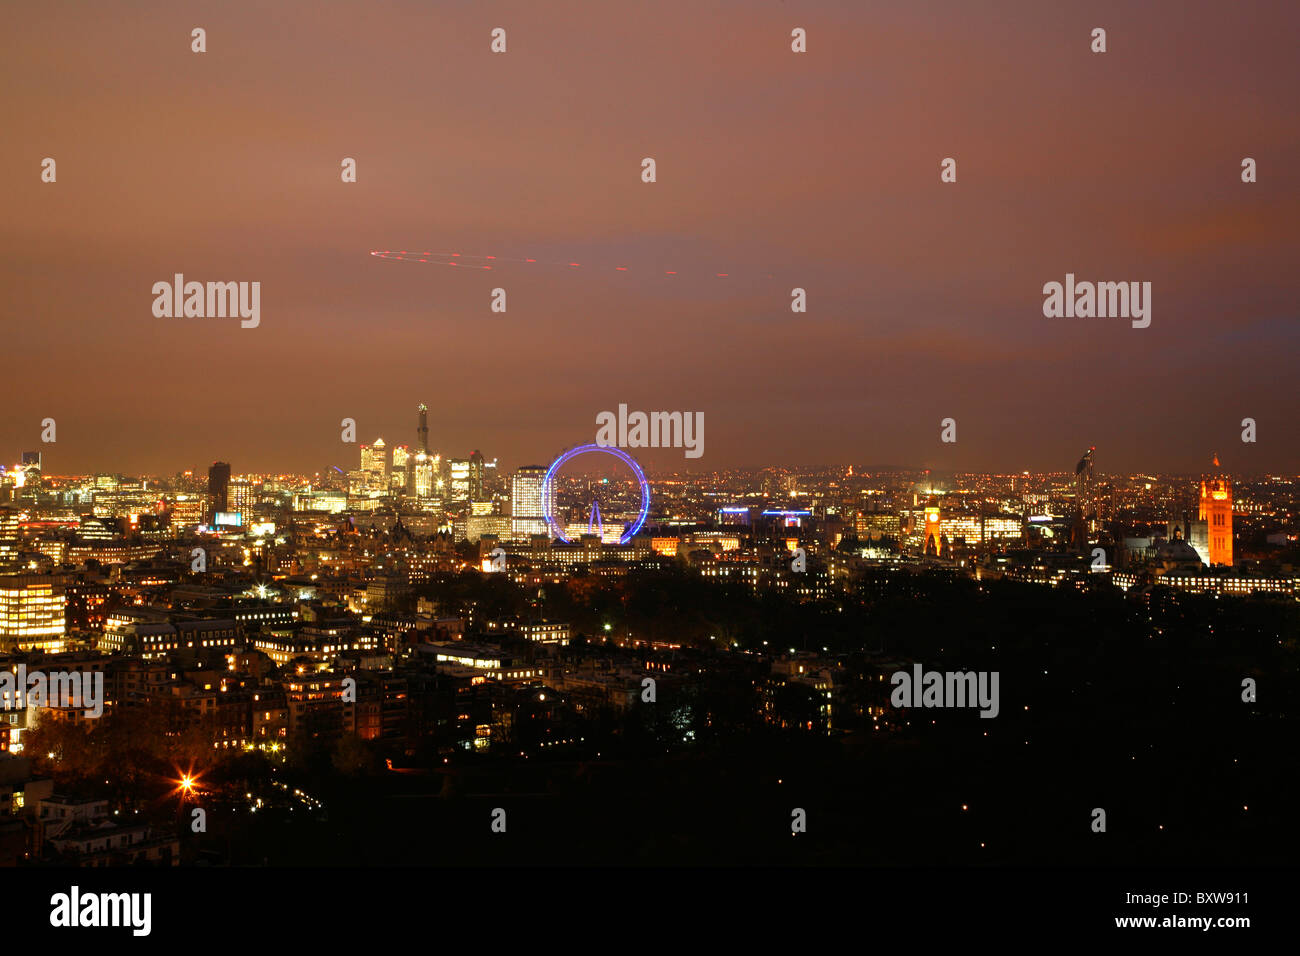 Skyline view looking east over St James's towards Houses of Parliament, London Eye and Canary Wharf, London, - Stock Image